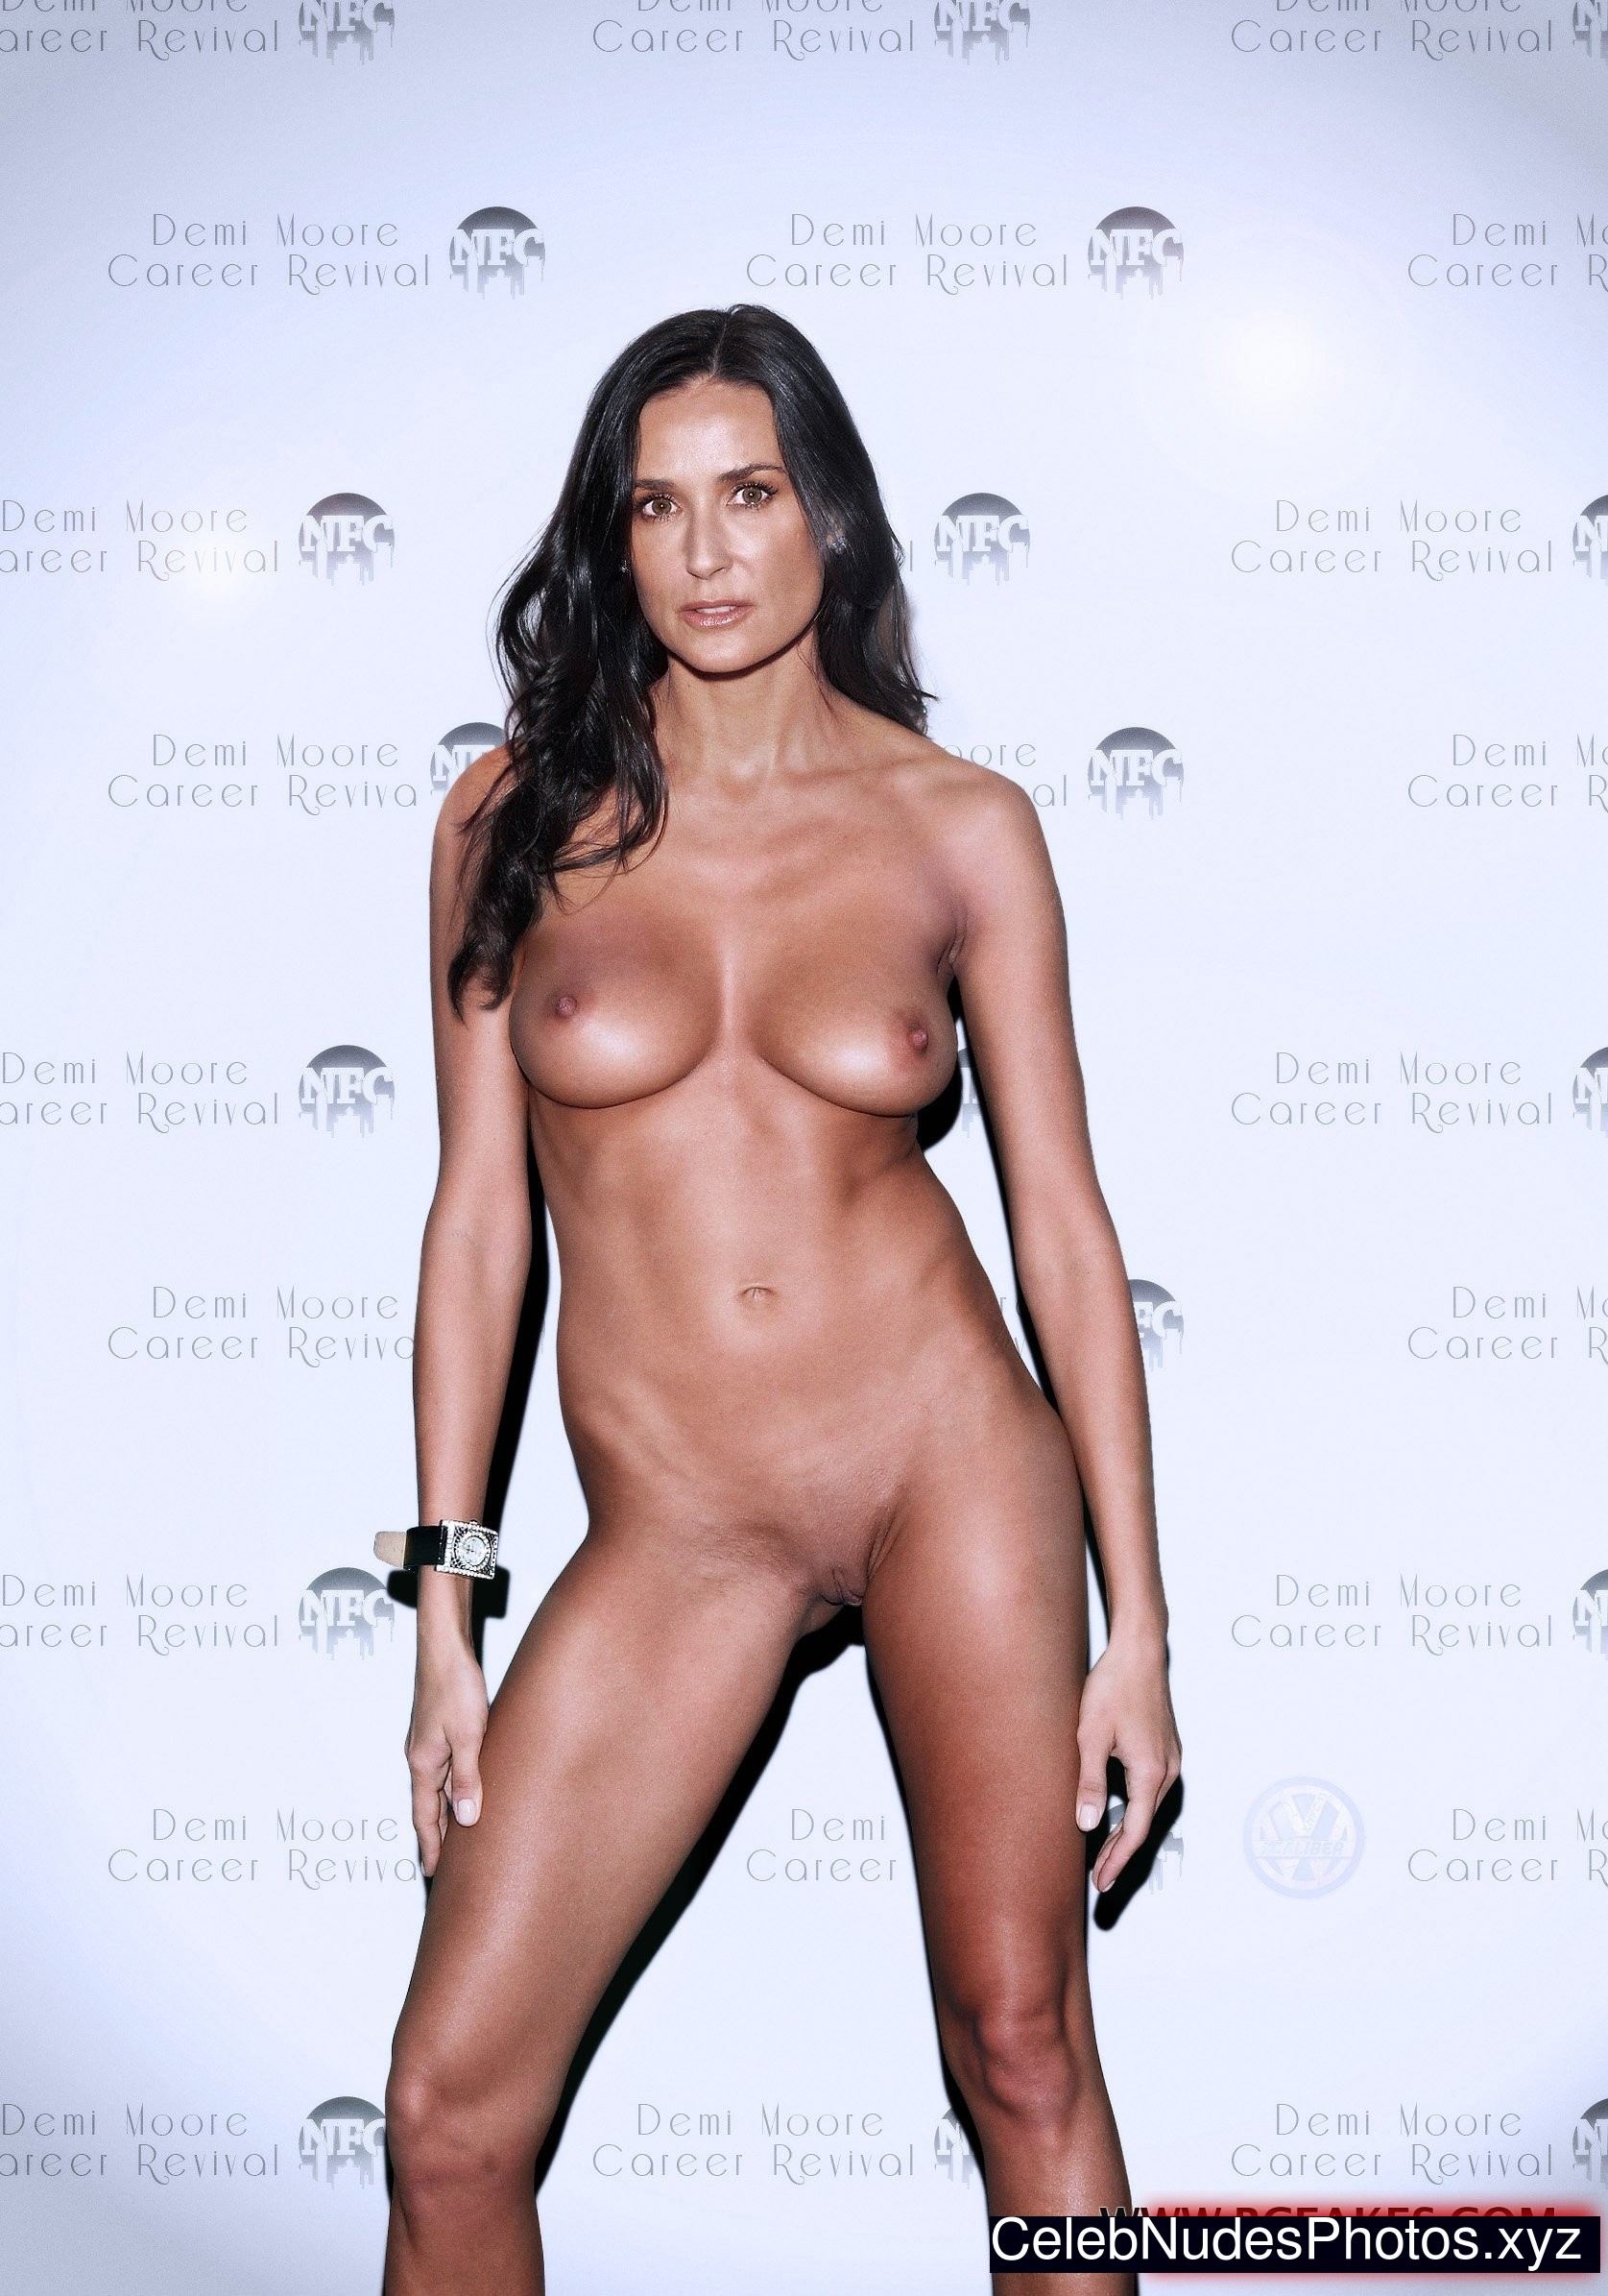 demi moore naked free wichsen